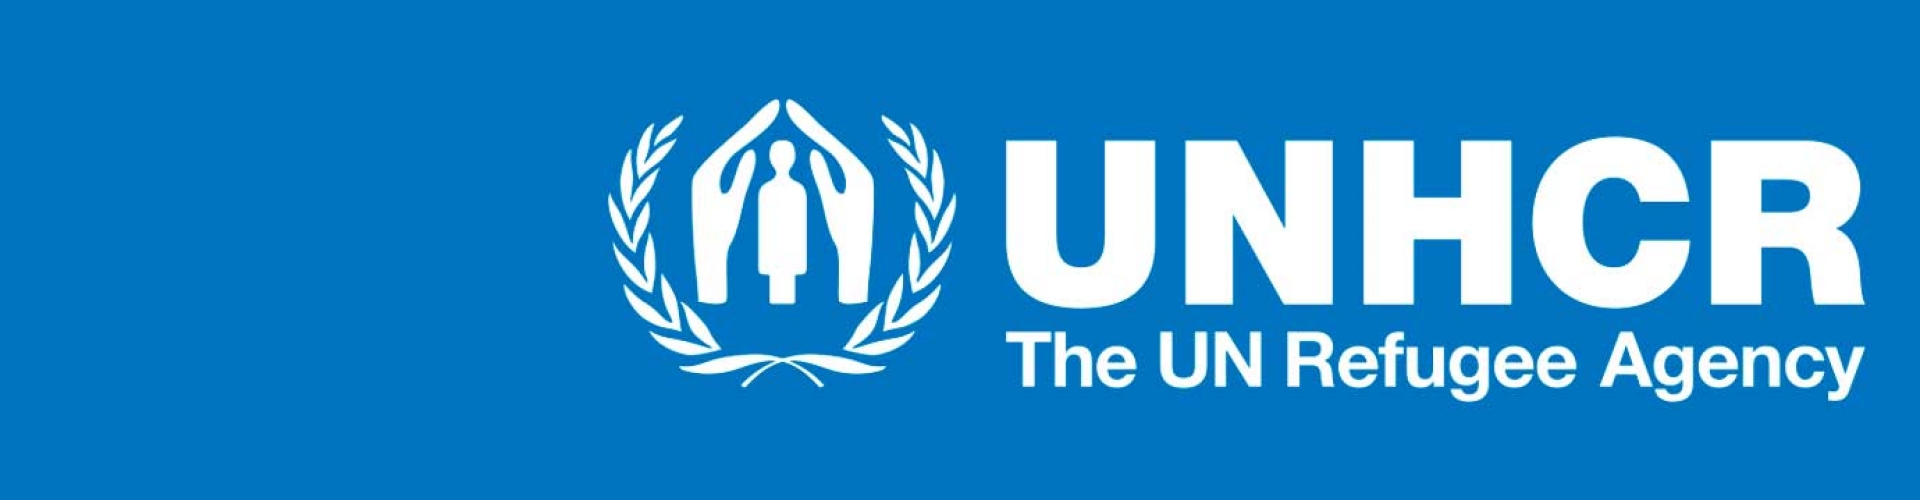 UNHCR welcomes Royal Thai Government's commitment to release of detained children in Thailand